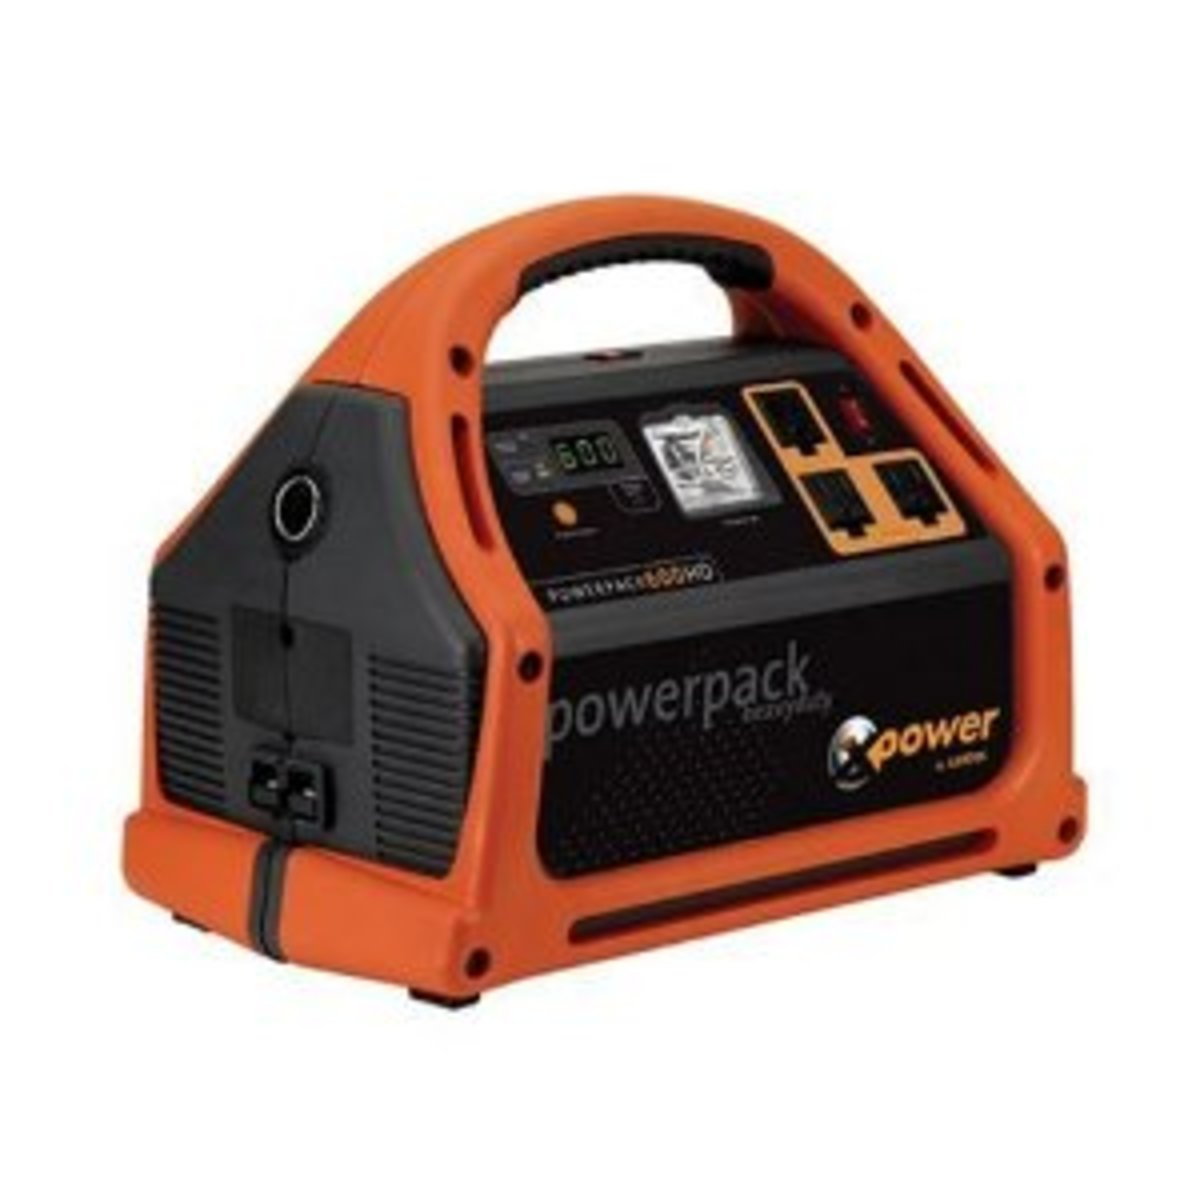 Xantrex Powerpack 600 Watt Jumpstarter, Power Inverter and Backup Power Source